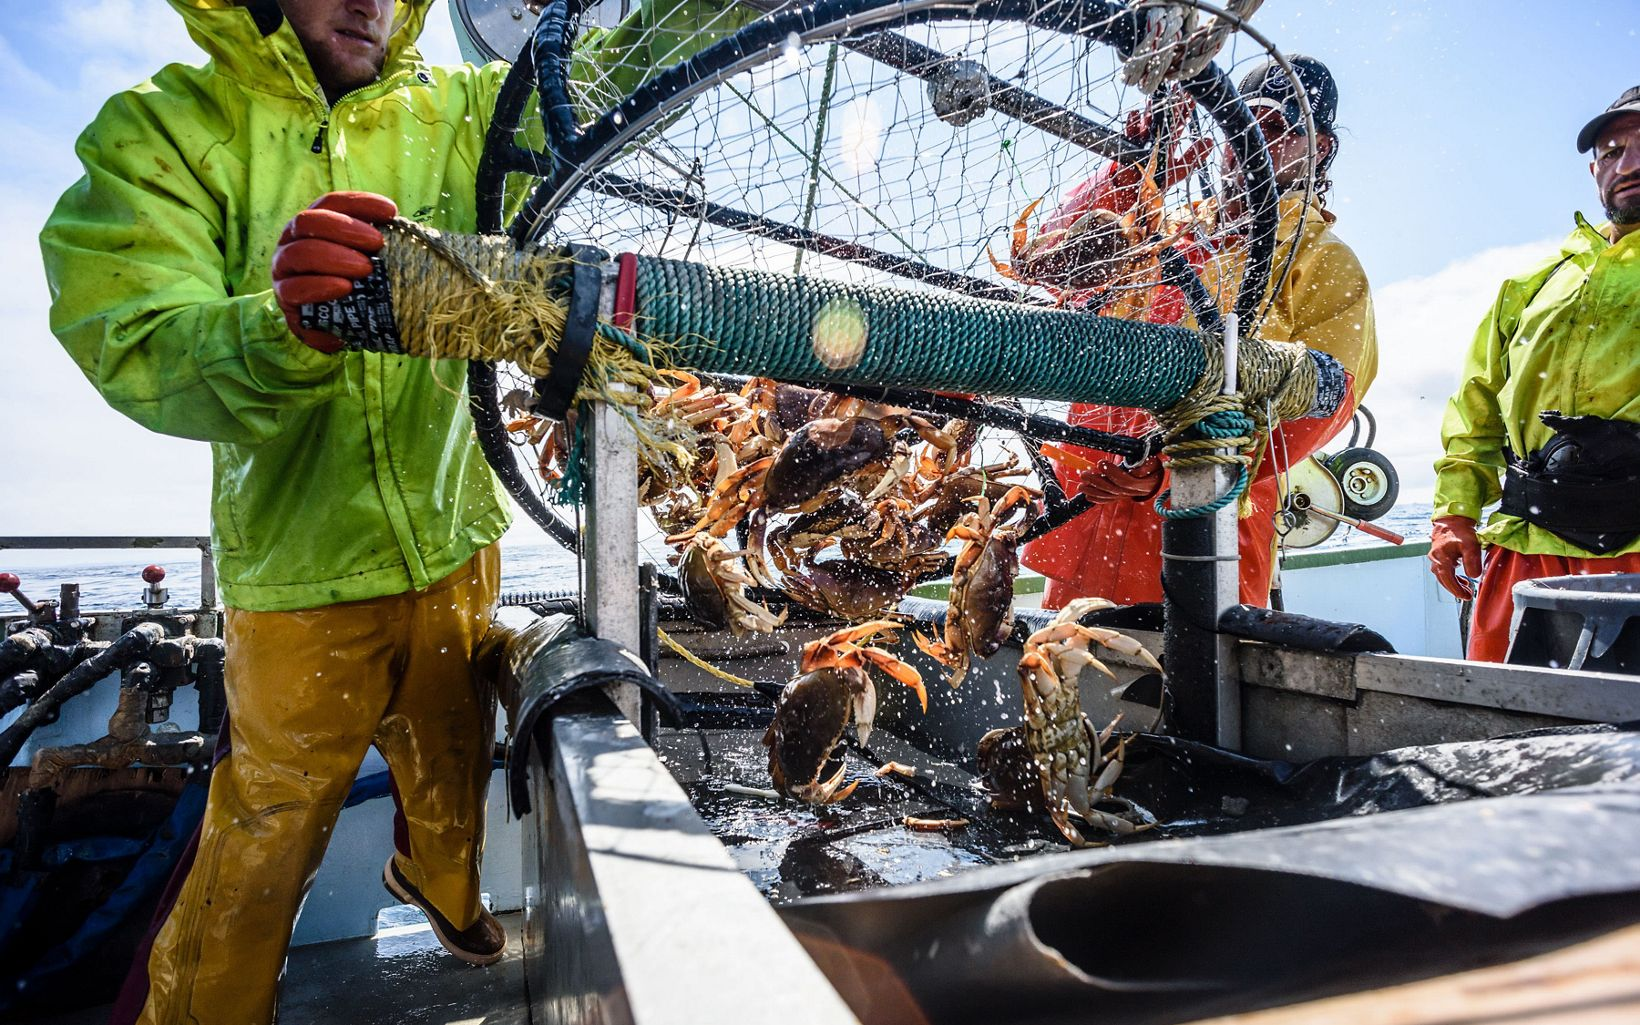 In the face of this challenge, leaders in the crab fishery are committed to working with partners like The Nature Conservancy to reduce entanglements.